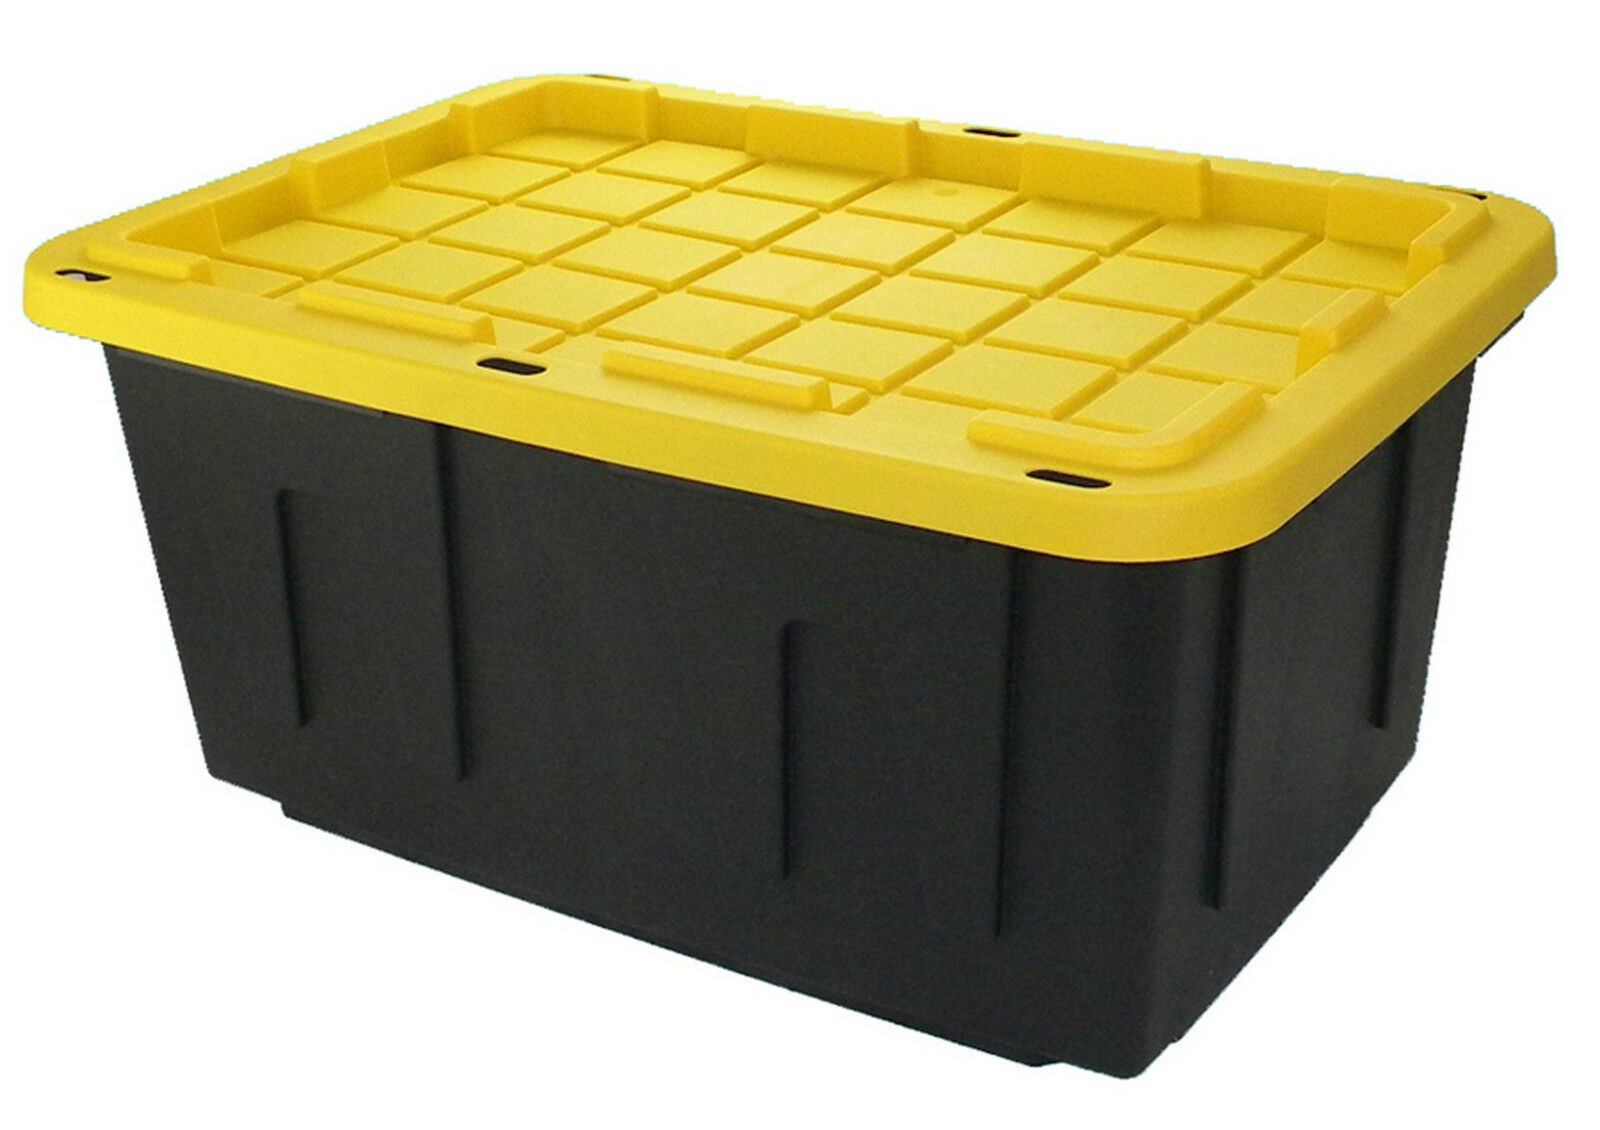 heavy duty large 26x18x12 15gallon industrial plastic